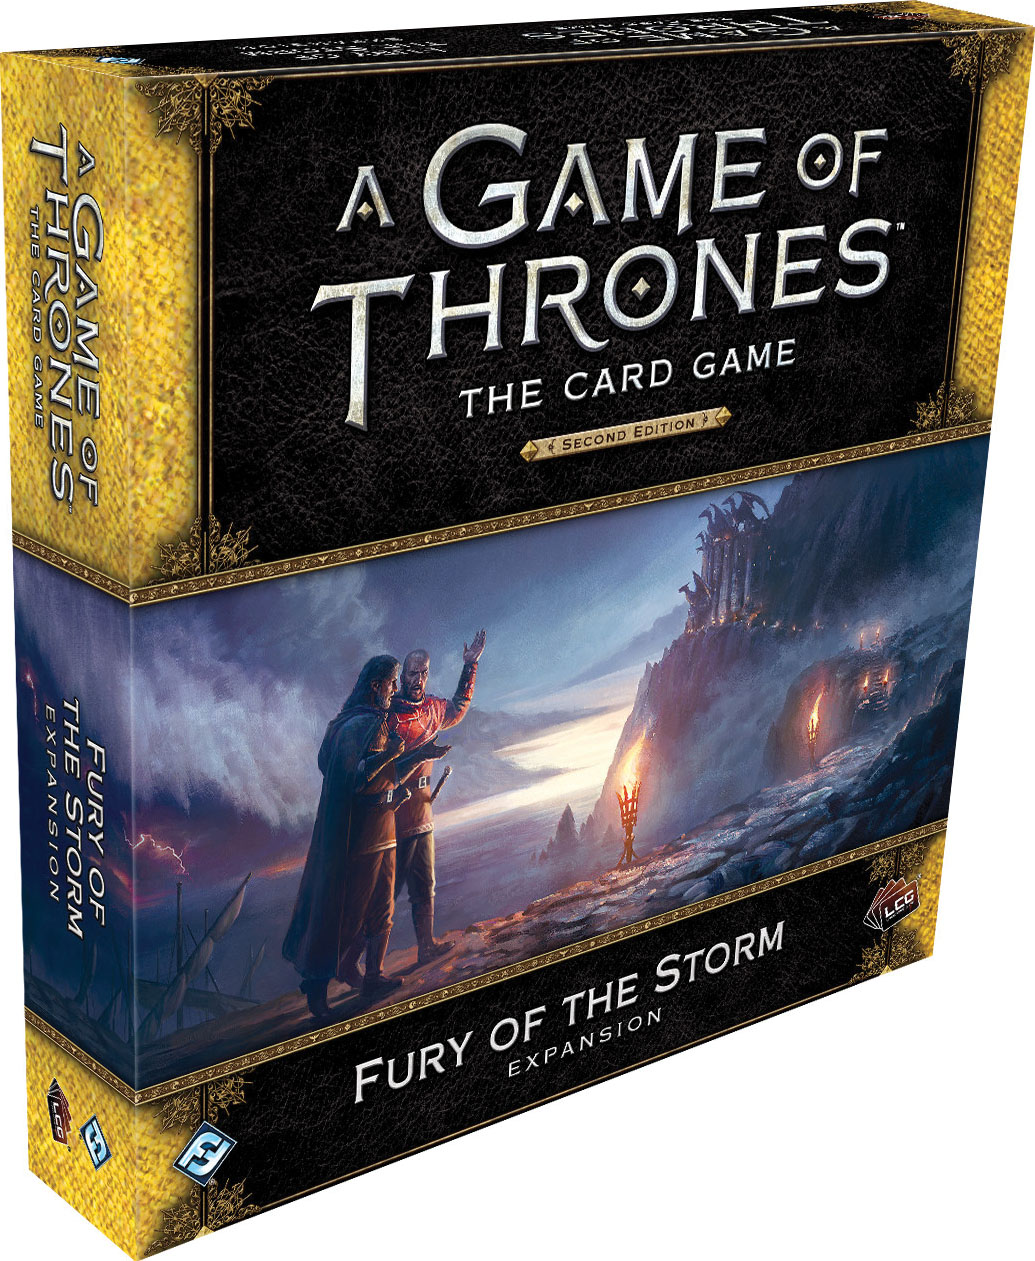 A Game Of Thrones Lcg: 2nd Edition - Fury Of The Storm Expansion Game Box